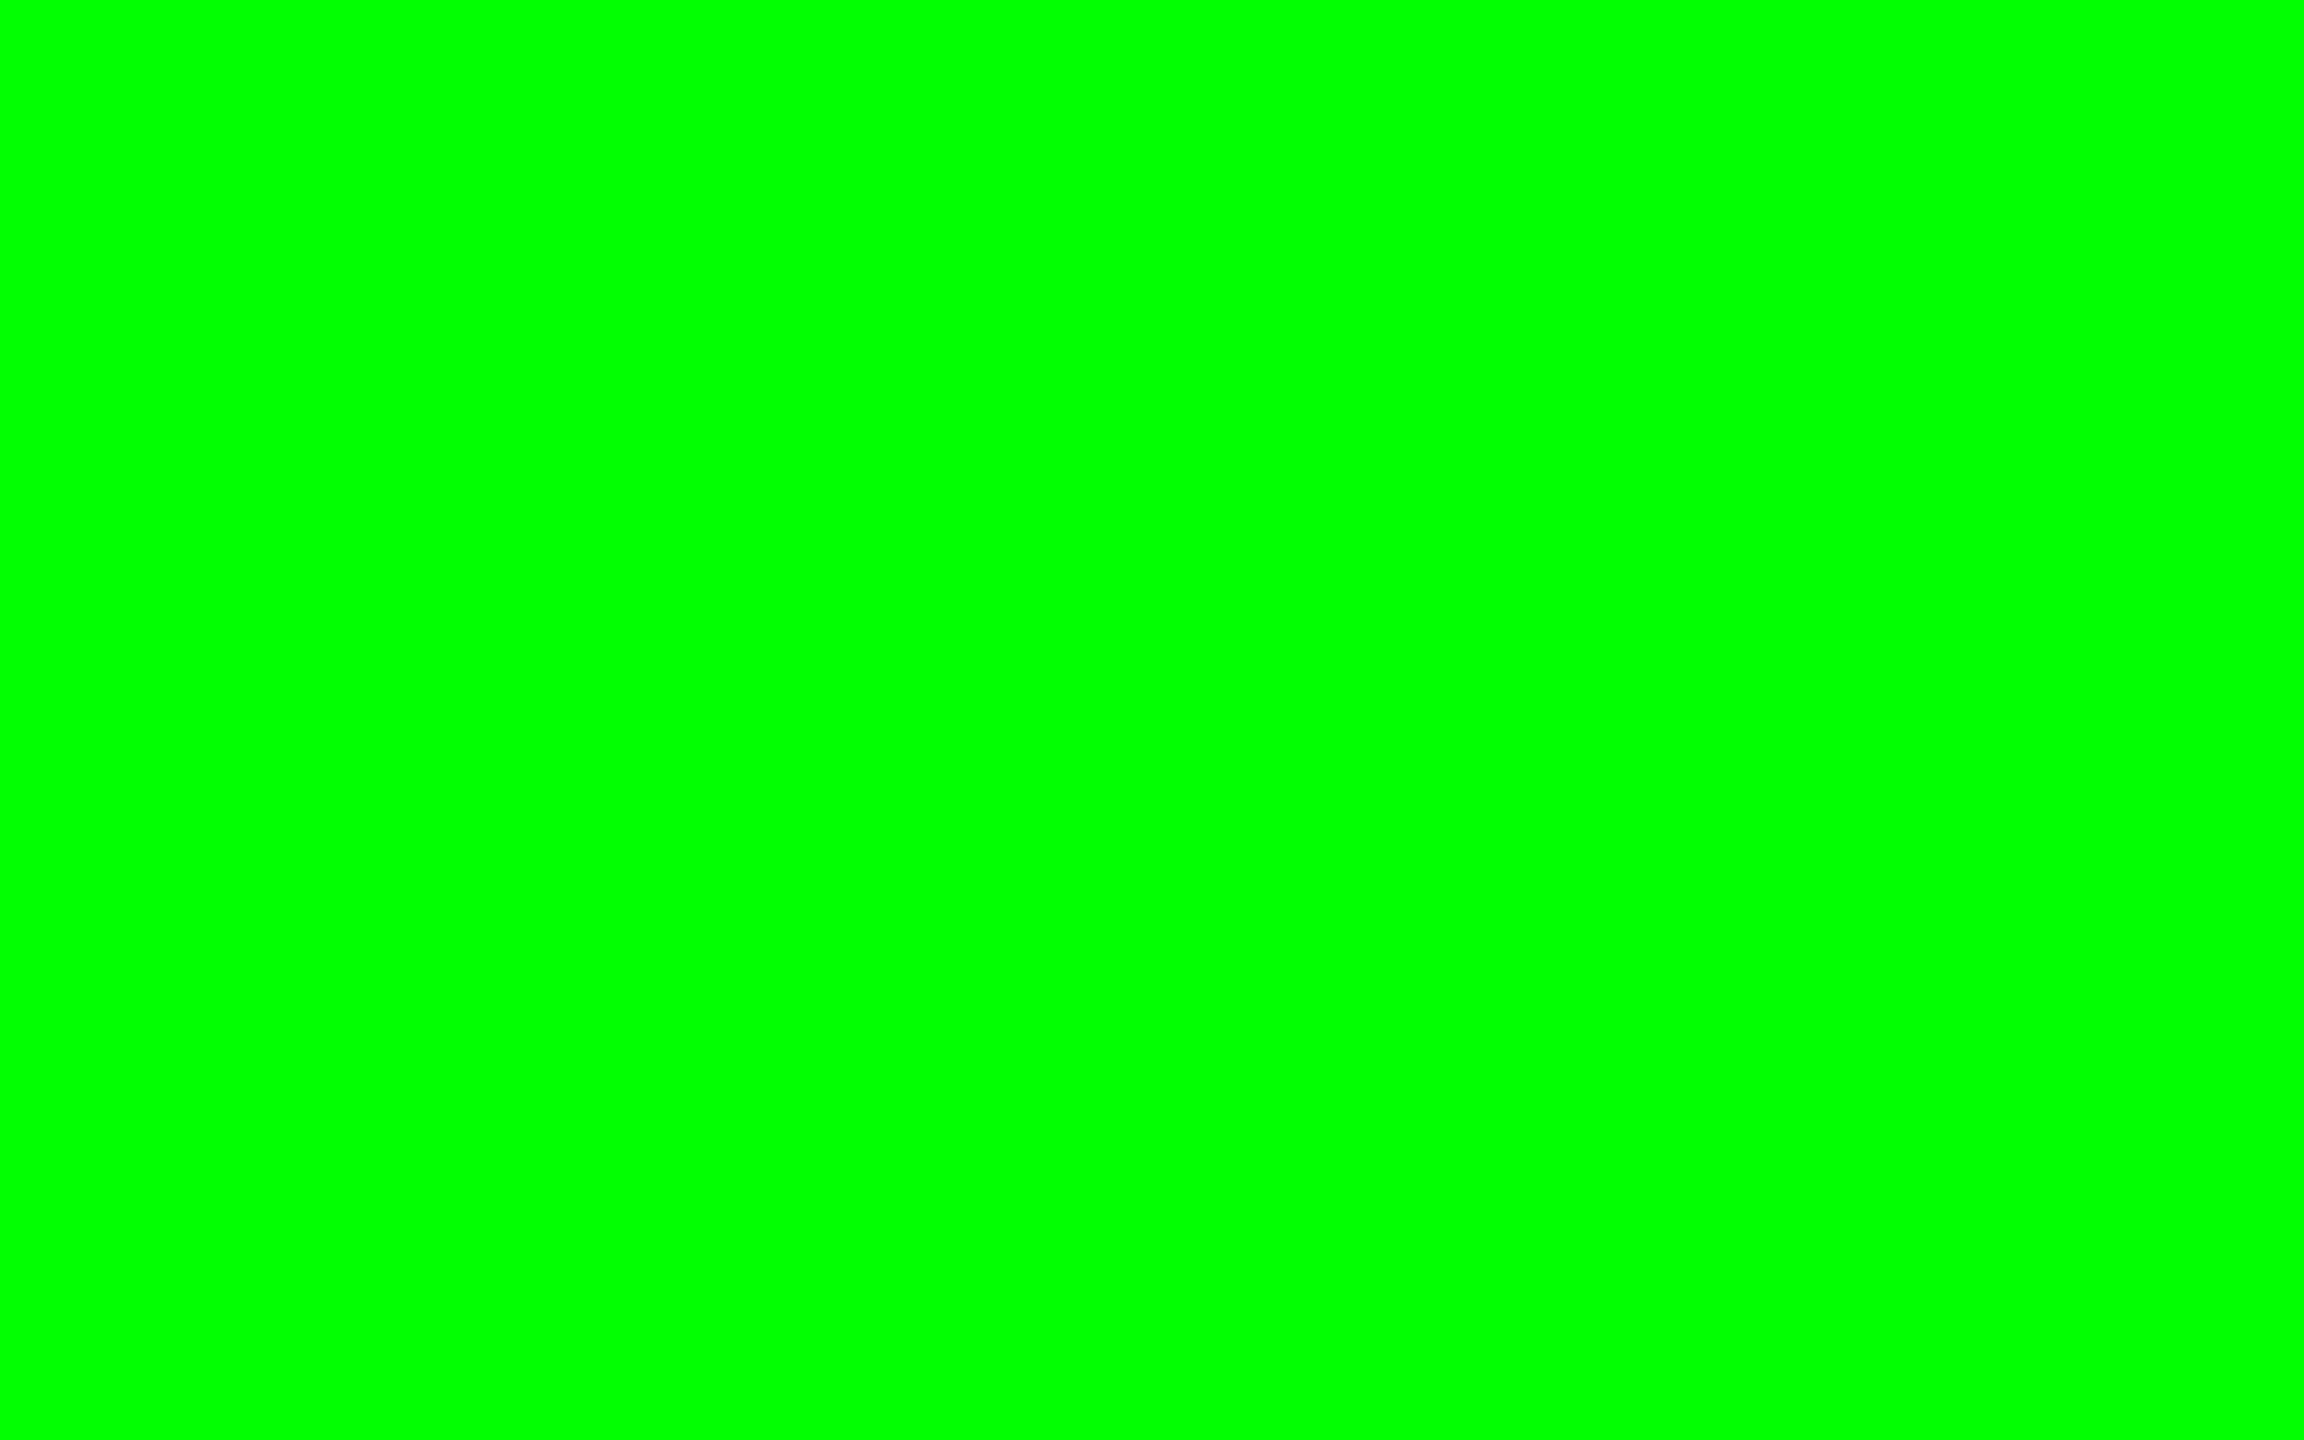 2304x1440 Green X11 Gui Green Solid Color Background